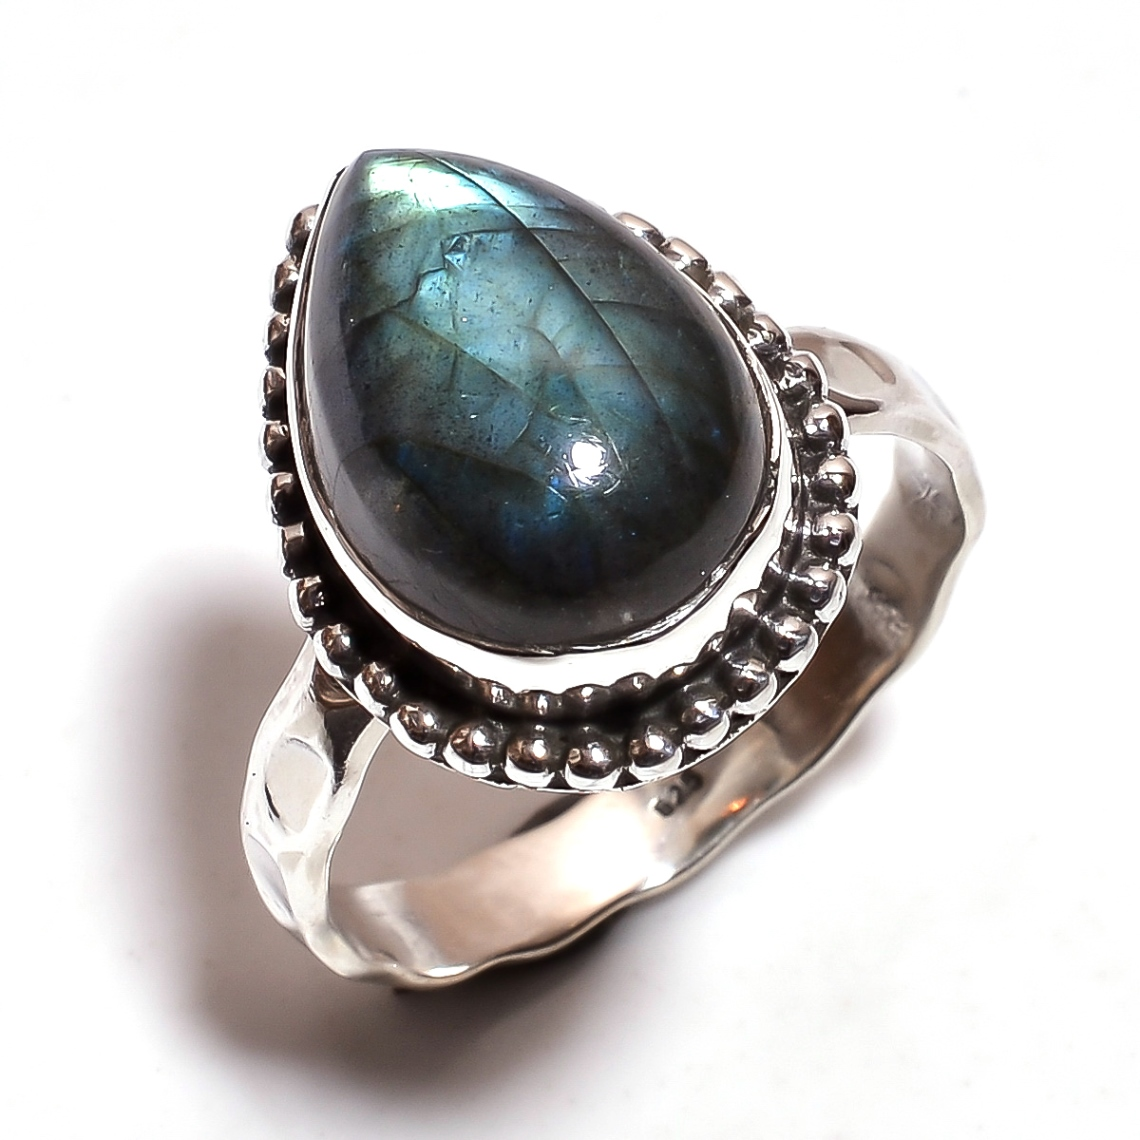 Labradorite Gemstone 925 Sterling Silver Hammered Ring Size 8